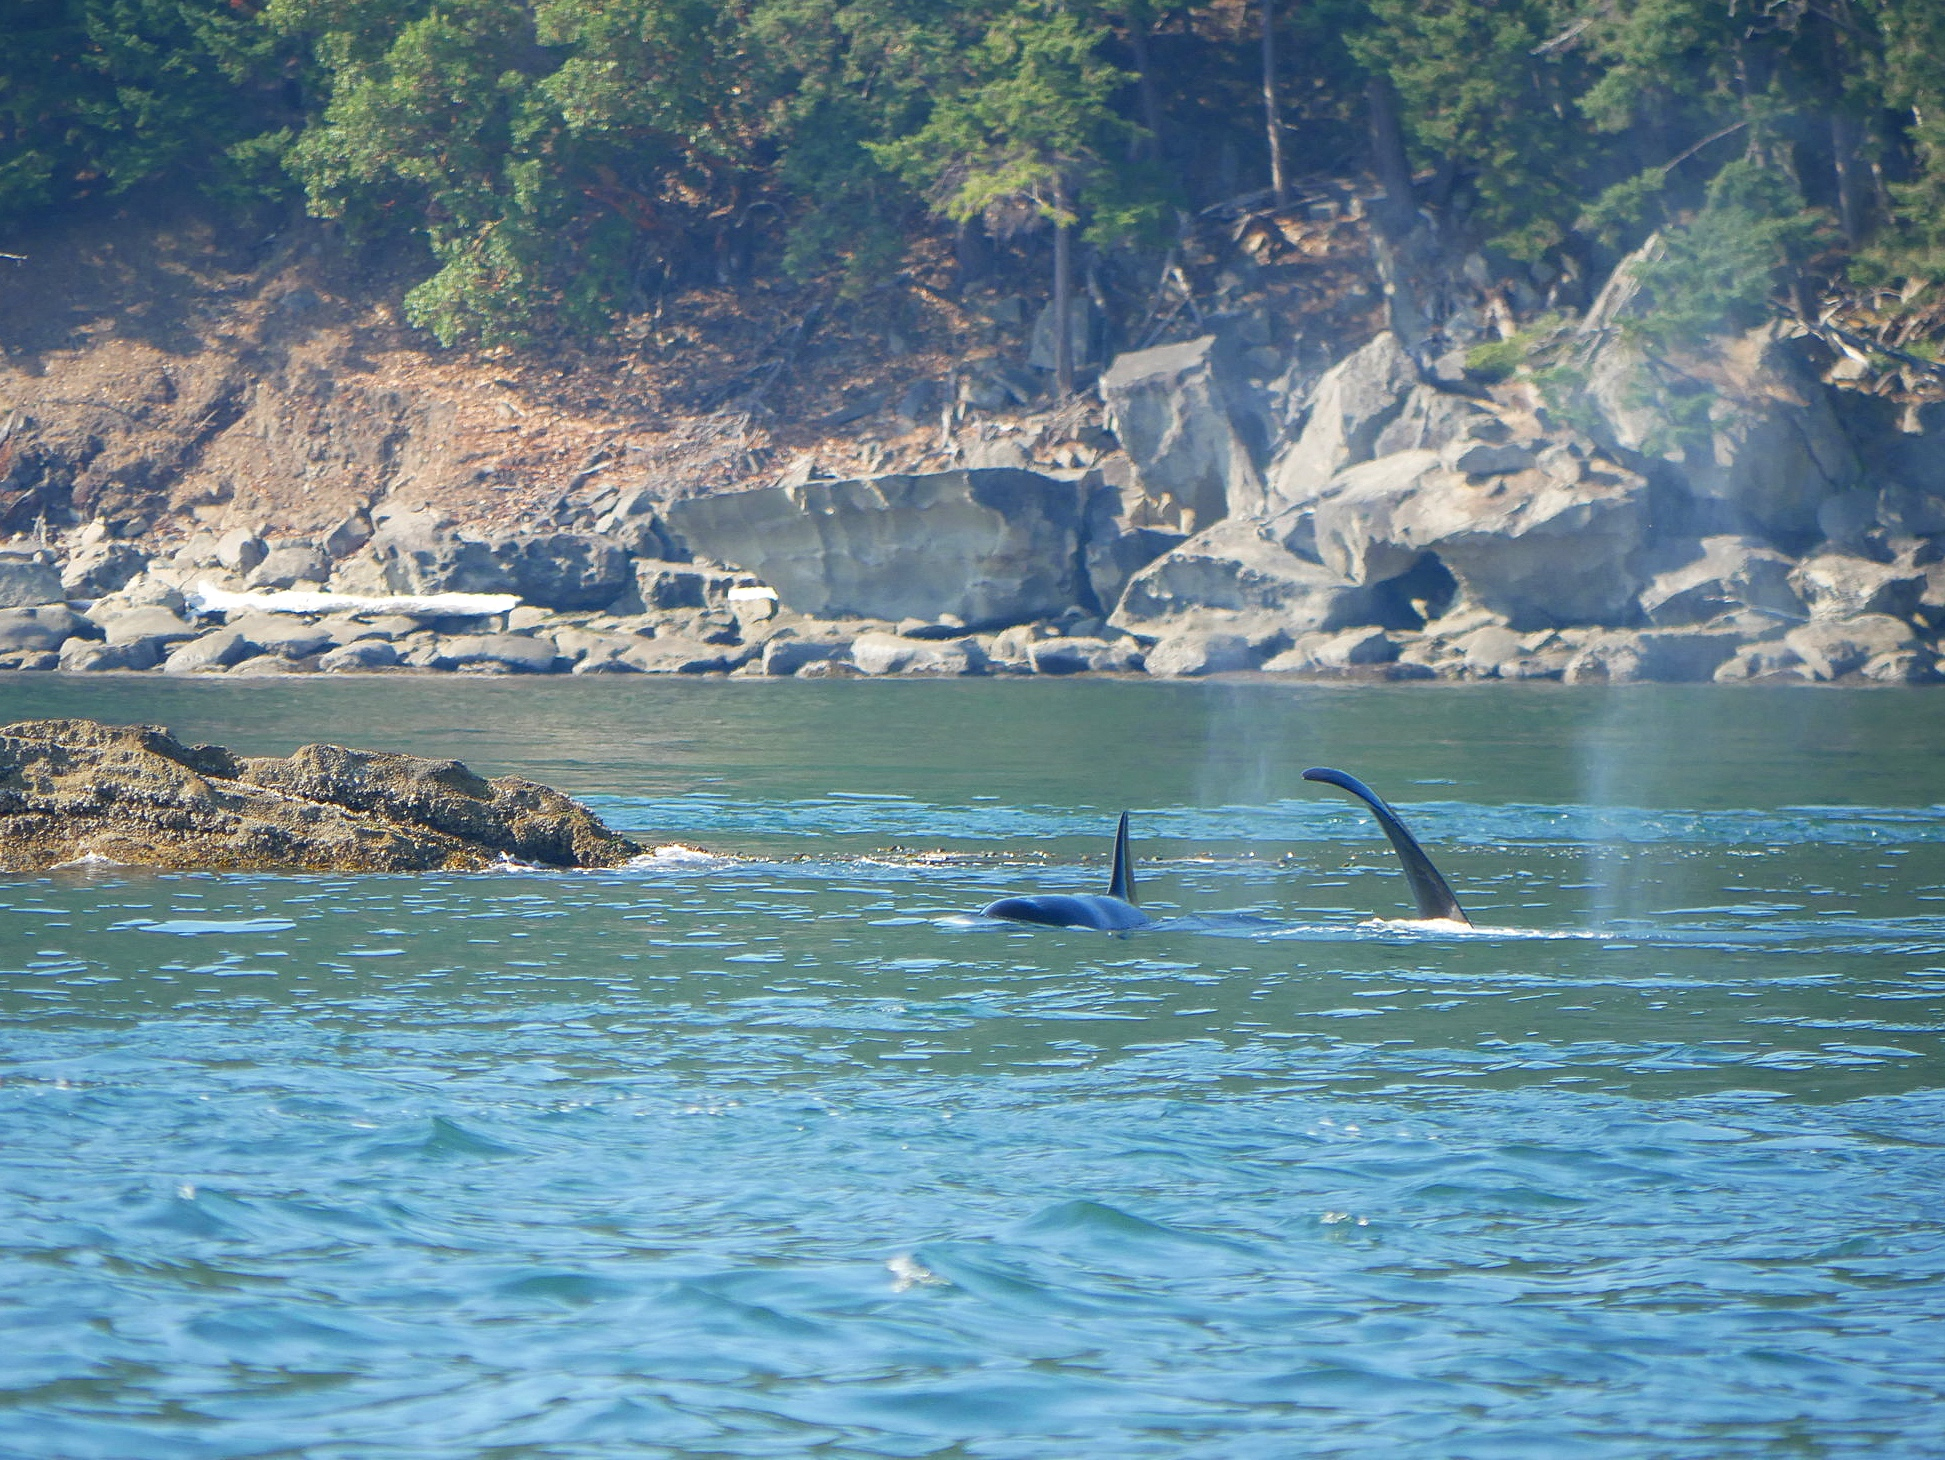 Galiano and Nootka hanging out in the kelp beds. Photo by Rebeka Pirker (3.30)